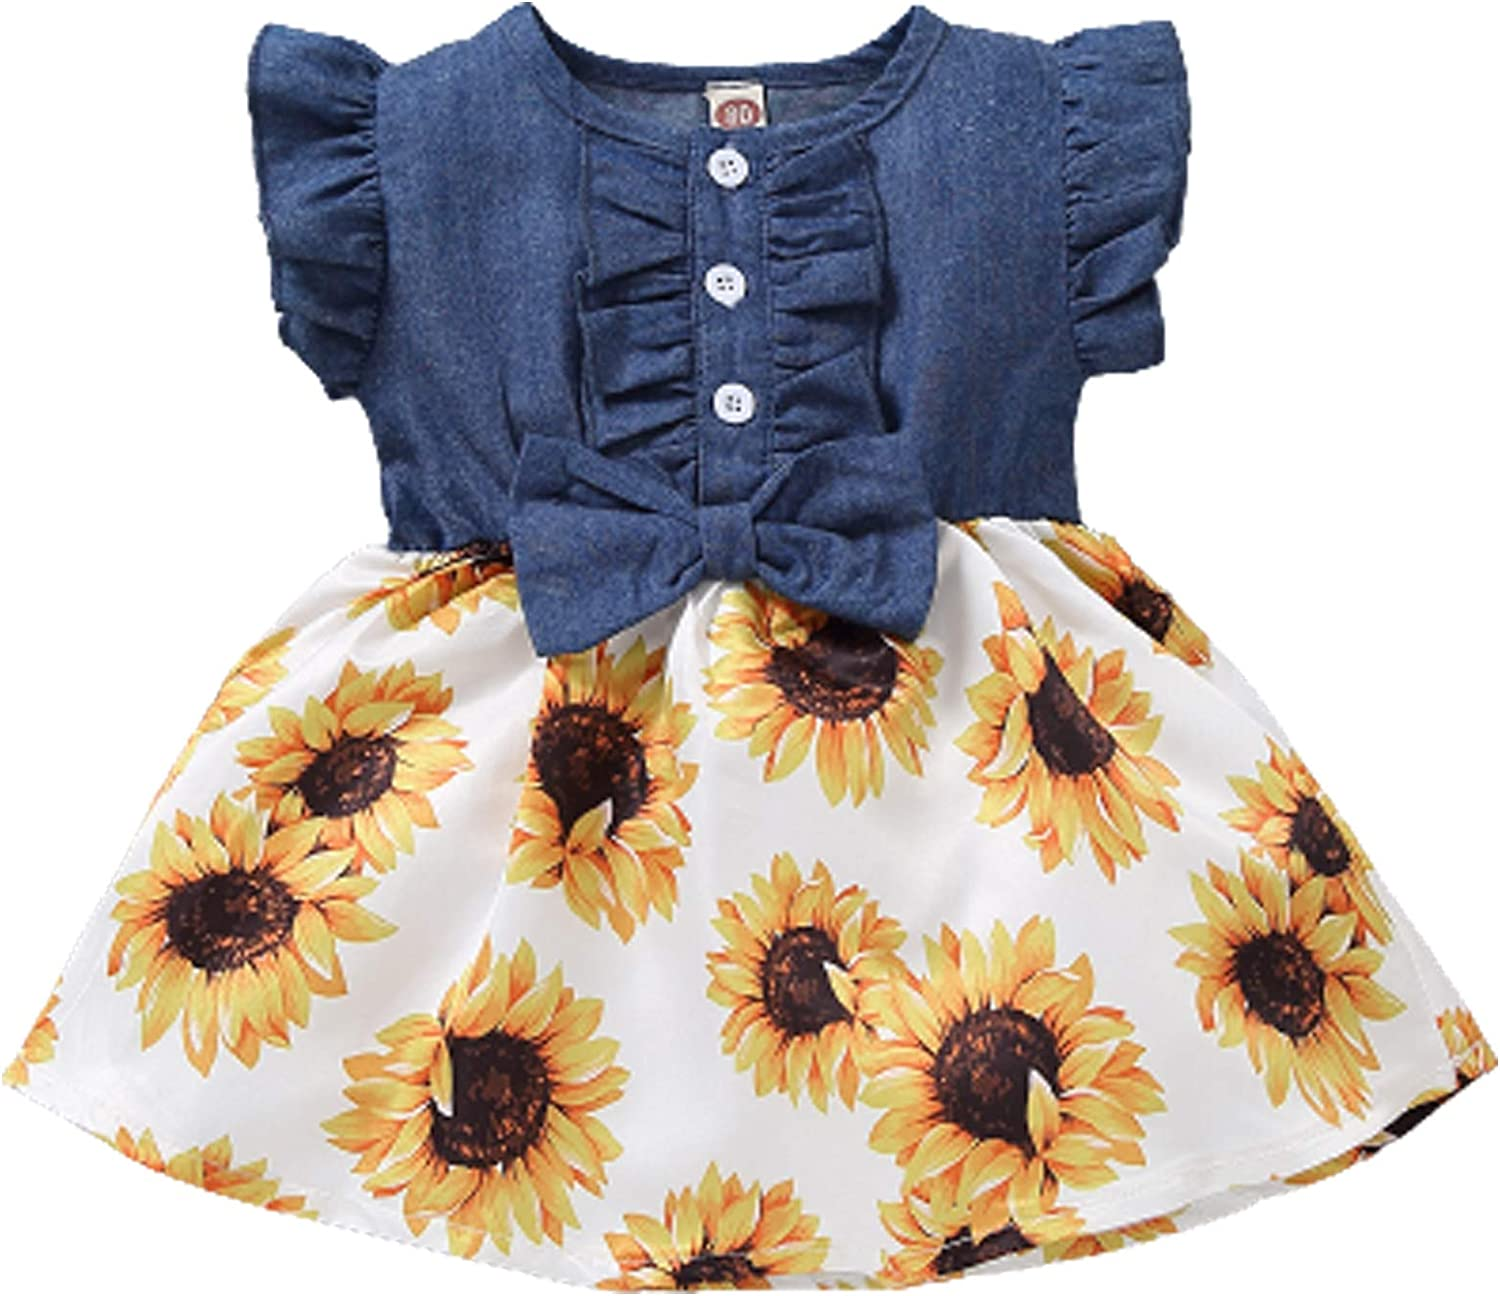 Toddler Girl Outfits Baby Sunflower Low price Denim Princess Summe Year-end annual account Dresses